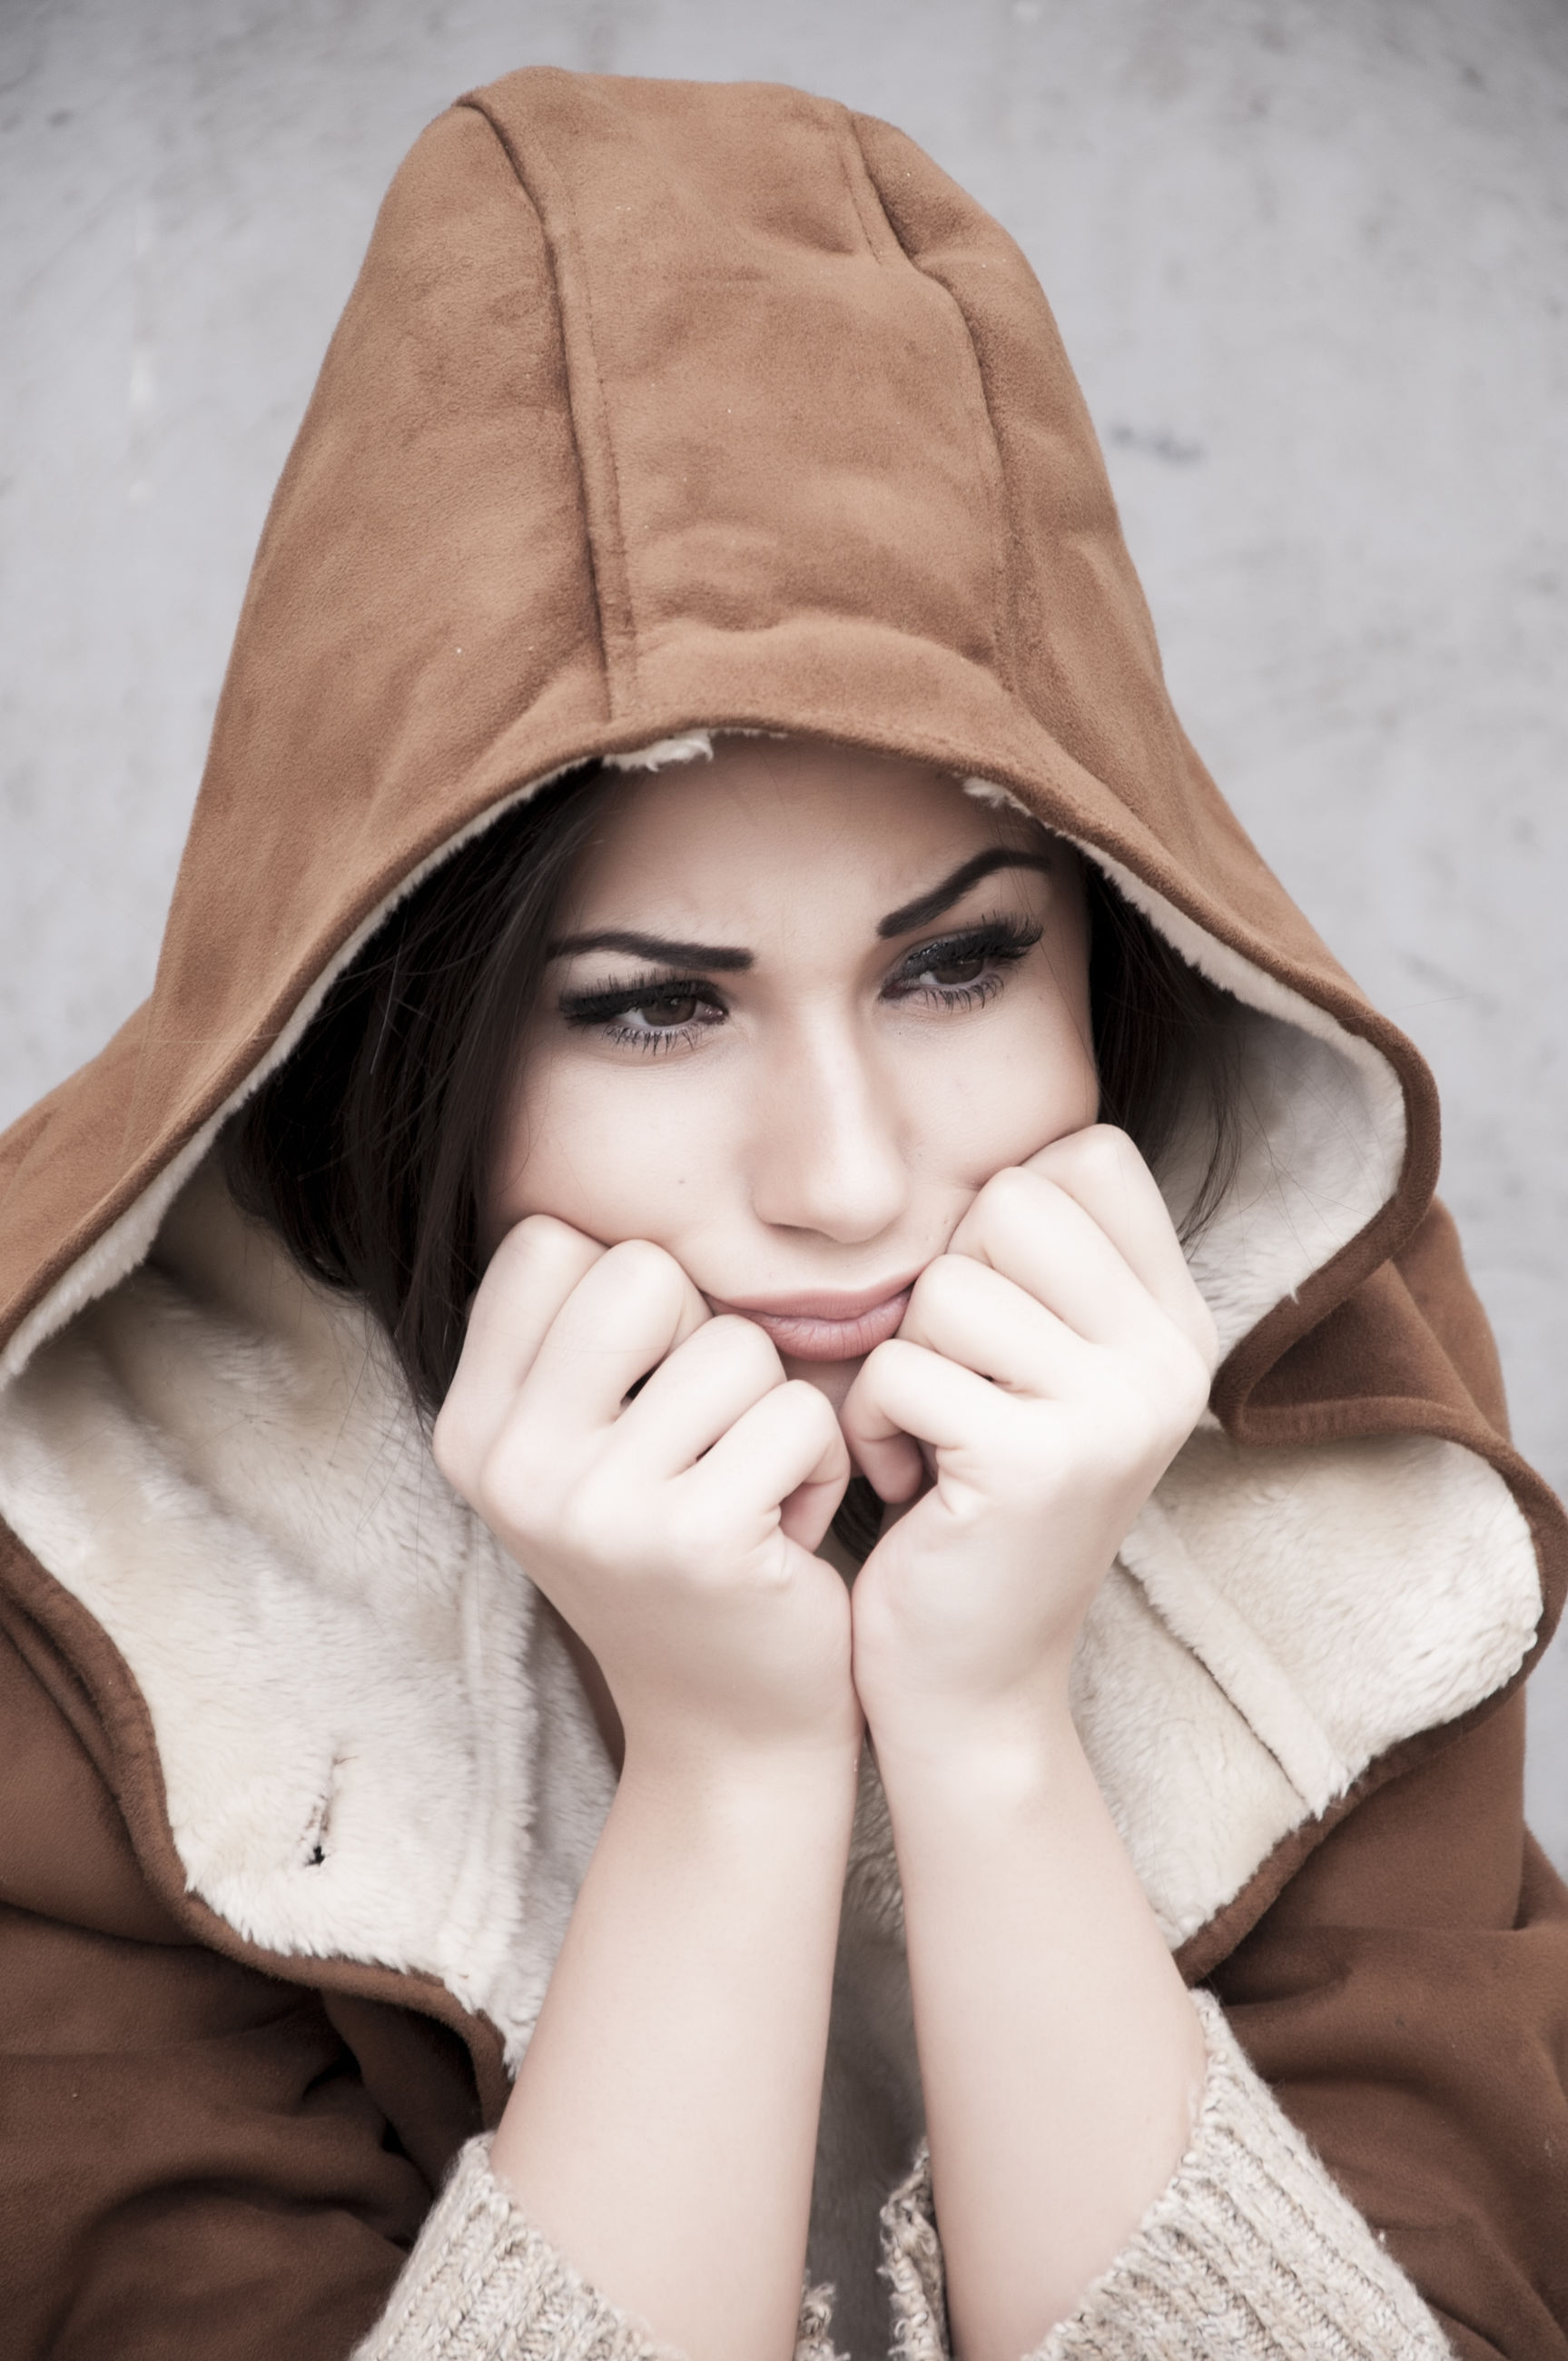 High angle view of sad thoughtful woman wearing warm clothing sitting outdoors